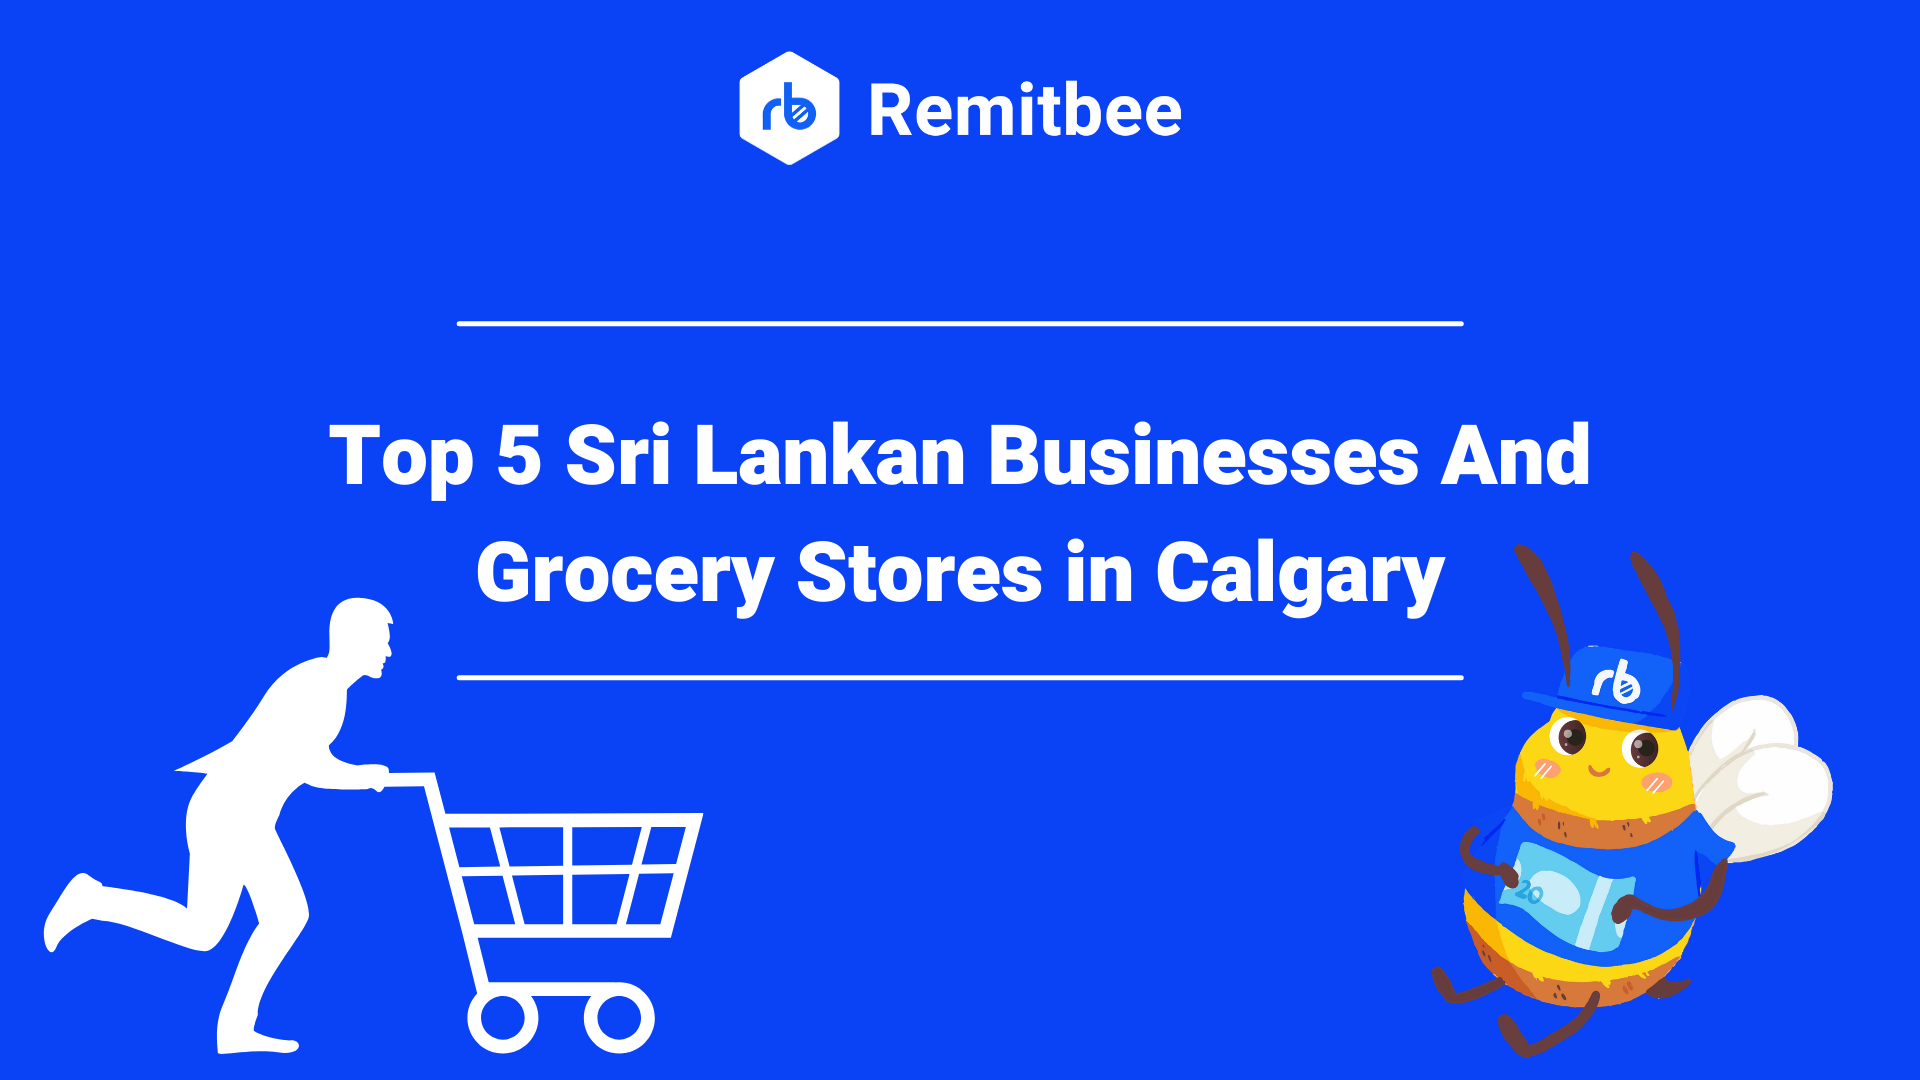 Top 5 Sri Lankan Businesses And Grocery Stores in Calgary